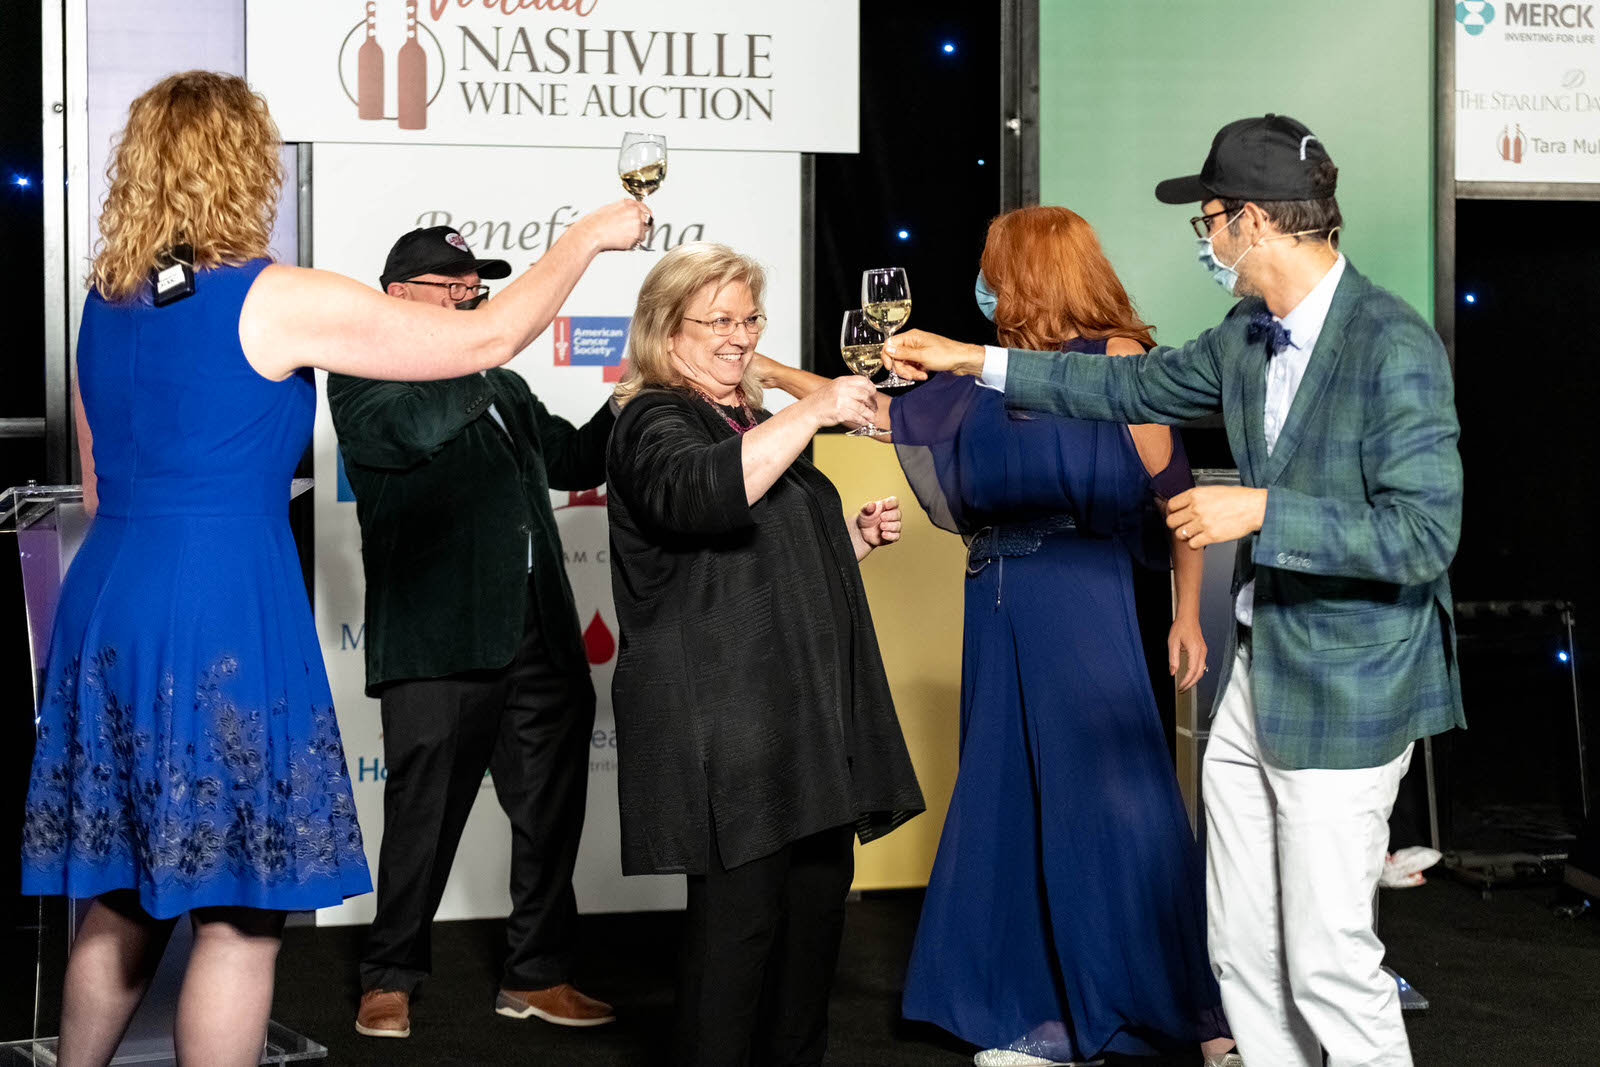 Nashville-Wine-Auctions-Live-Virtual-Auction-2020-by-Weatherly-Photography-201010-WRH_3657